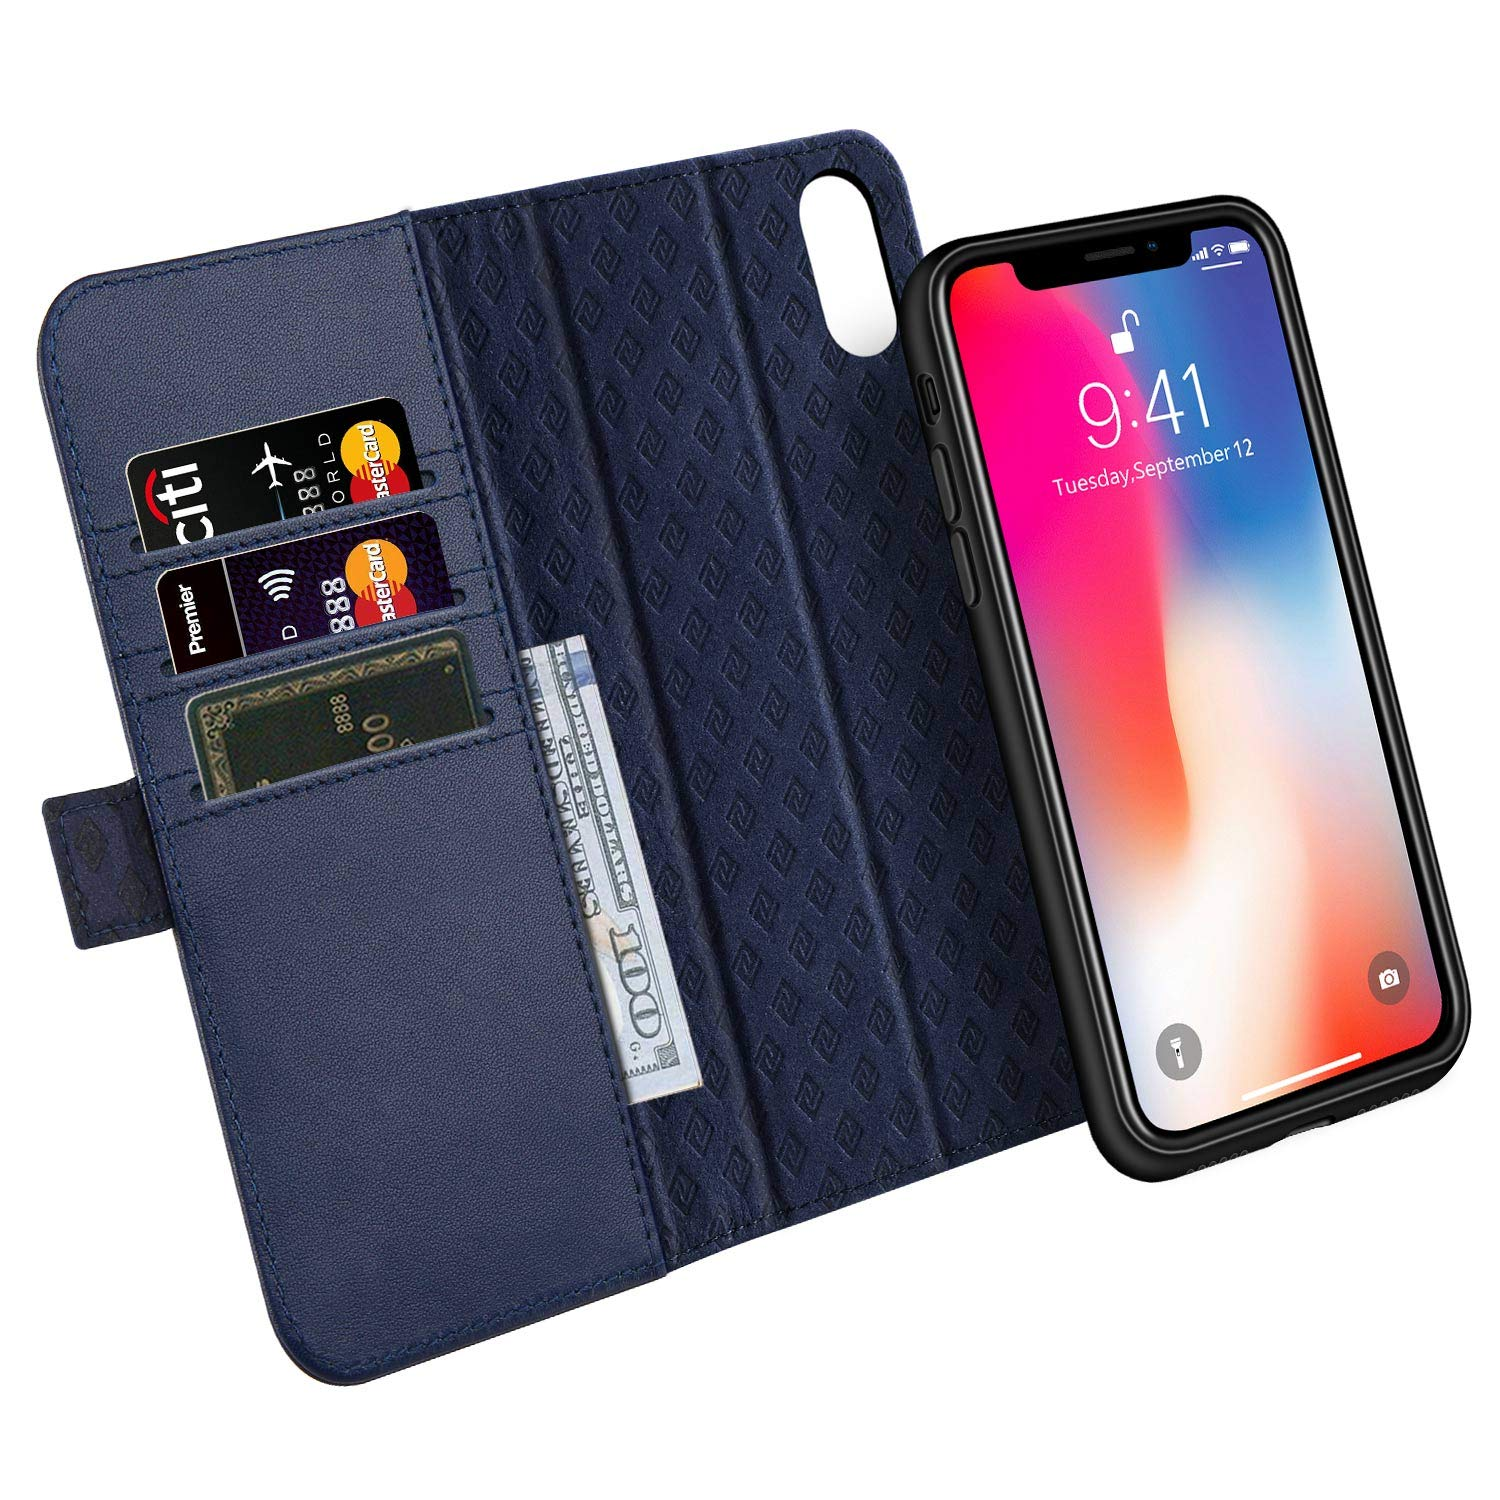 ZOVER Compatible with iPhone Xs/X Case Detachable Genuine Leather Wallet Case Support Wireless Charging Magnetic Car Mount Holder RFID Blocking Kickstand Feature Magnetic Closure Gift Box Navy Blue by ZOVER